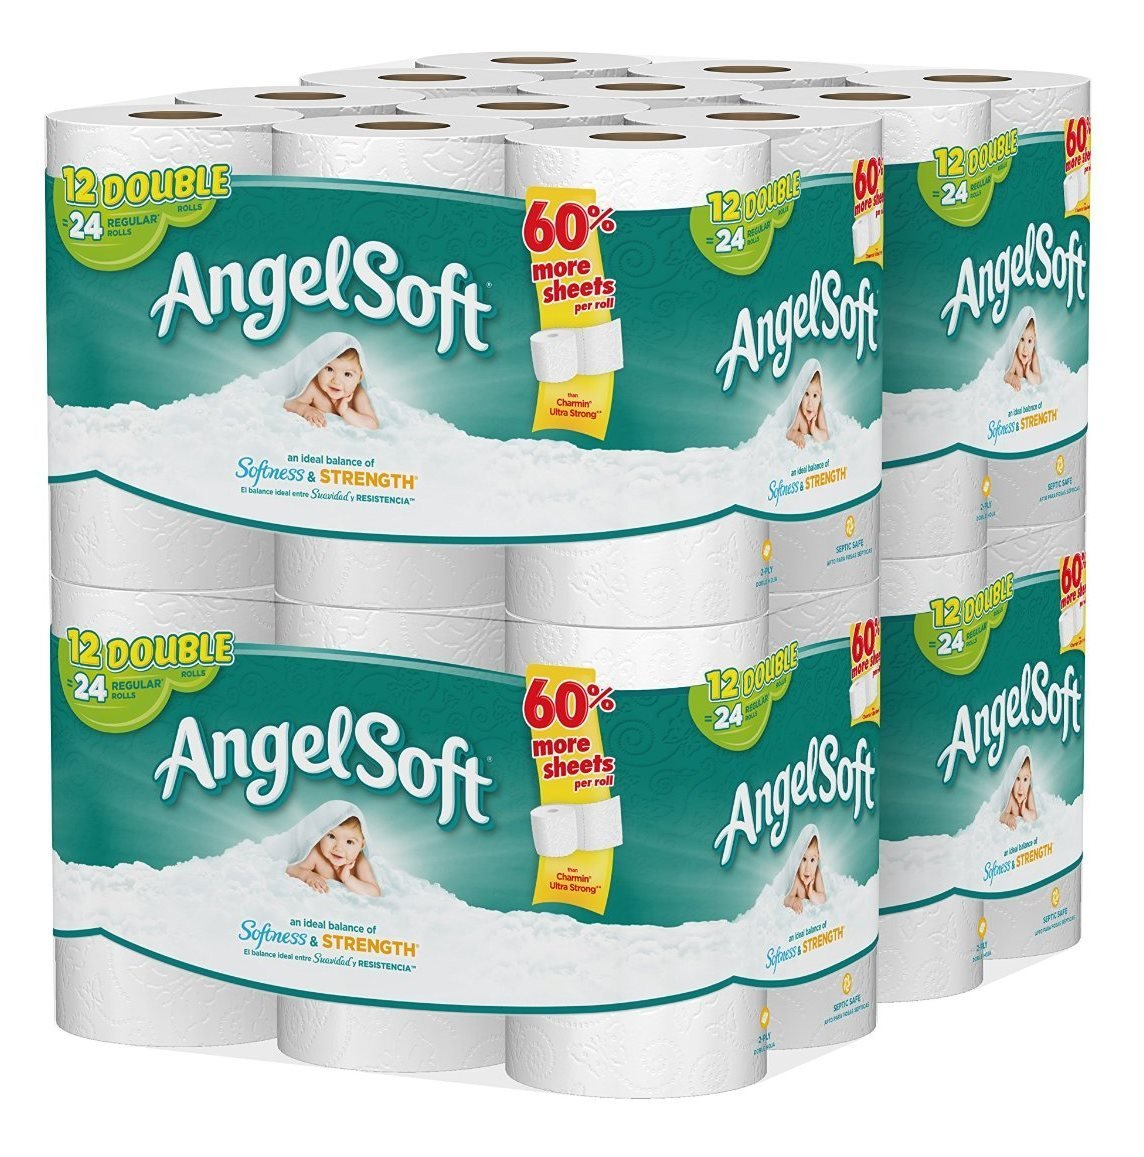 Angel Soft Toilet Paper, 48 Double Rolls, Bath Tissue (Pack of 4 with 12 rolls each)